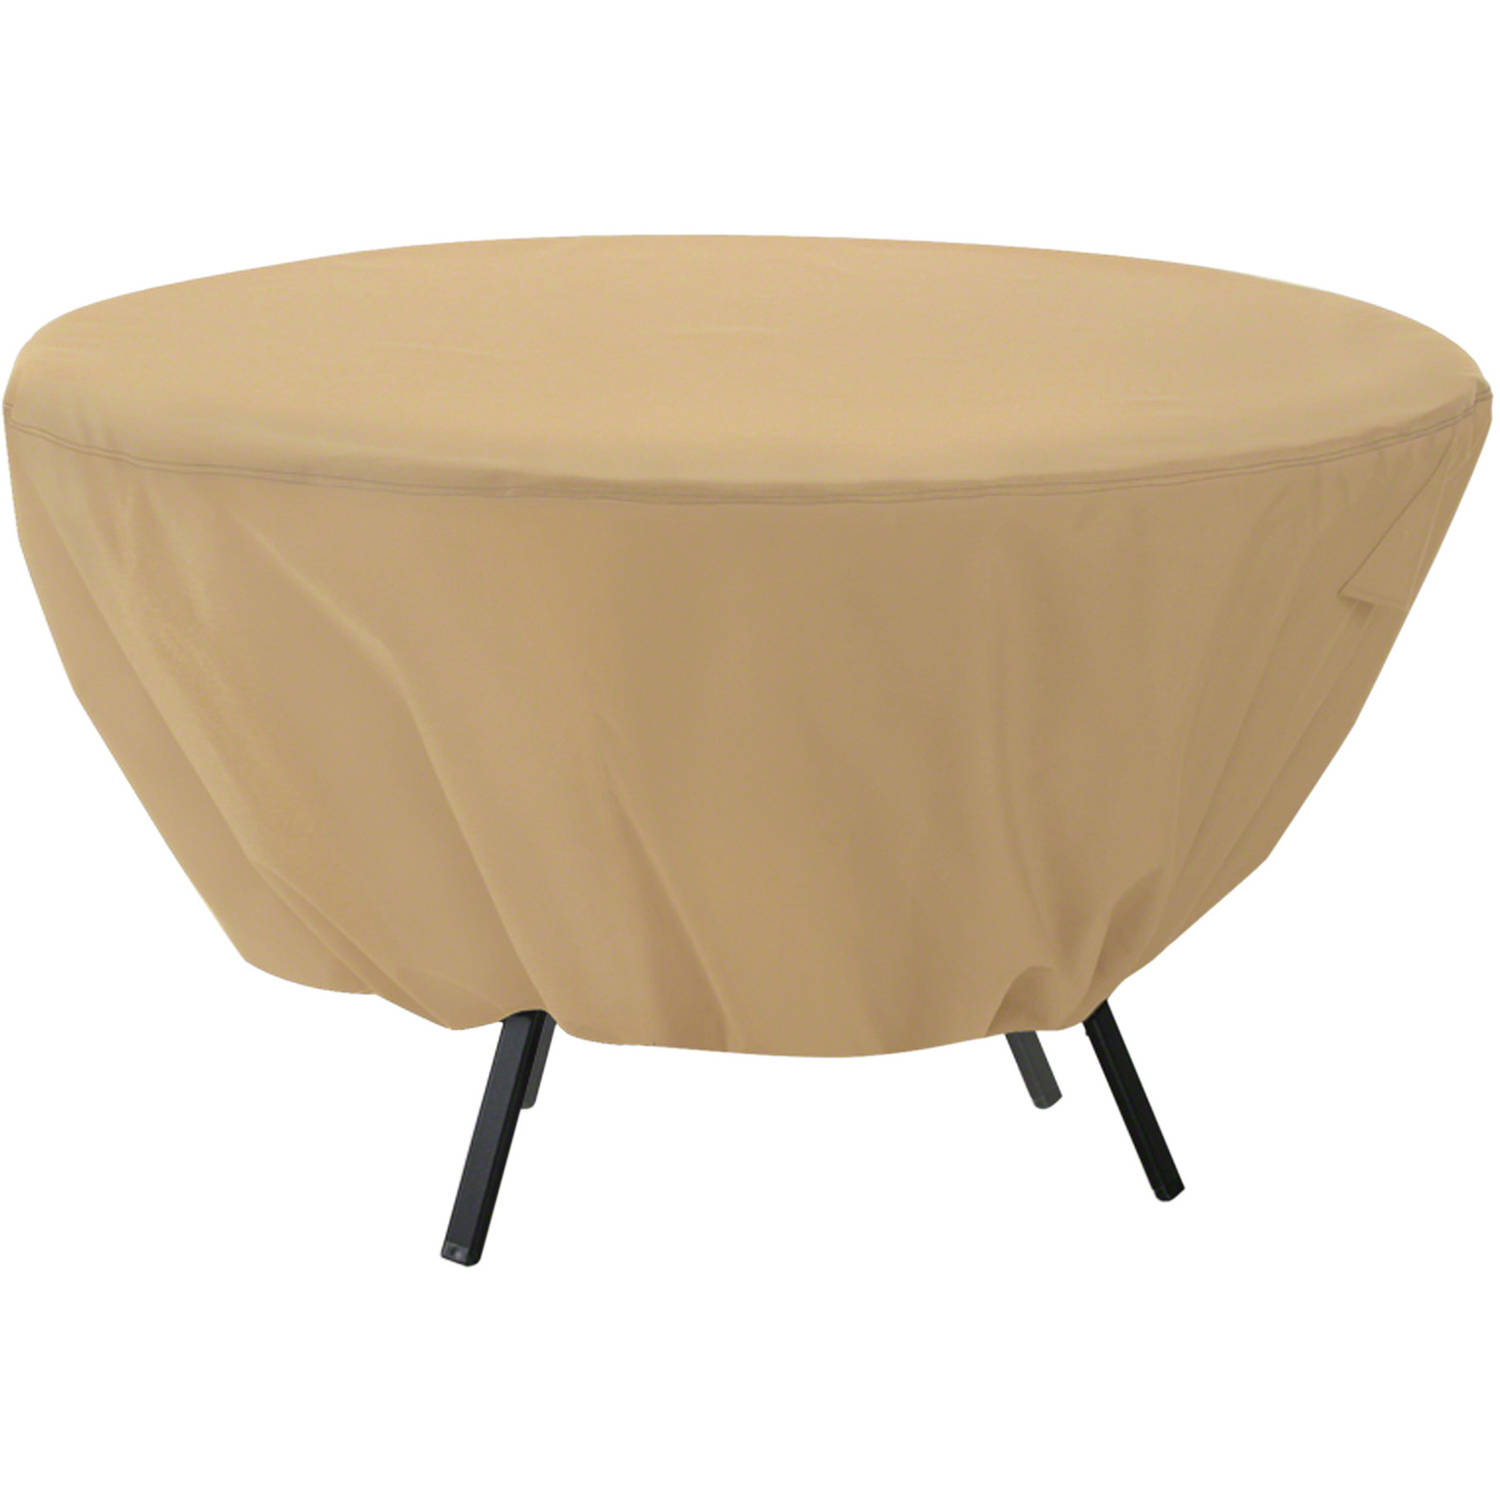 cover for patio furniture. Classic Accessories Terrazzo® Round Patio Table Cover - All Weather Protection Outdoor Furniture ( For